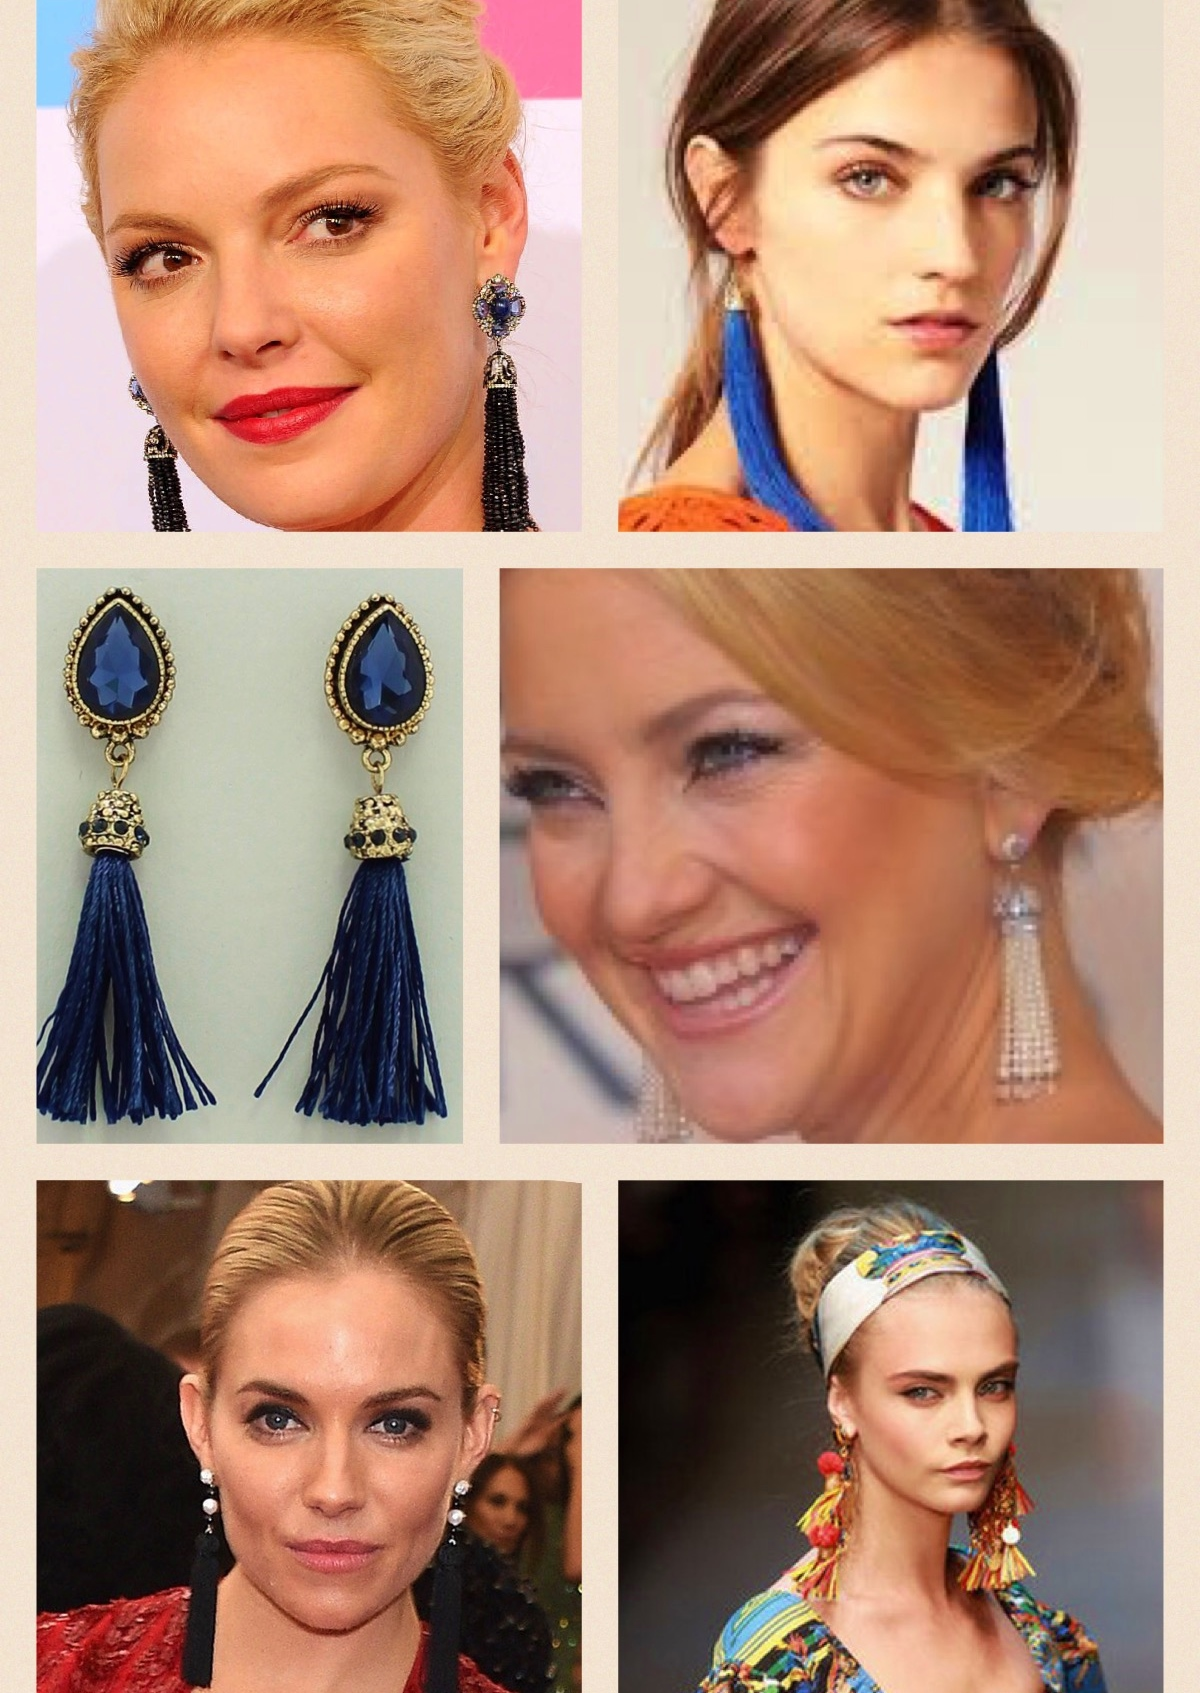 : Sapphire Tassel Earrings (shown above)  available on the FABFINDS webstore :   https://www.fabfinds-ainsleyandchase.com/shop-fabfinds